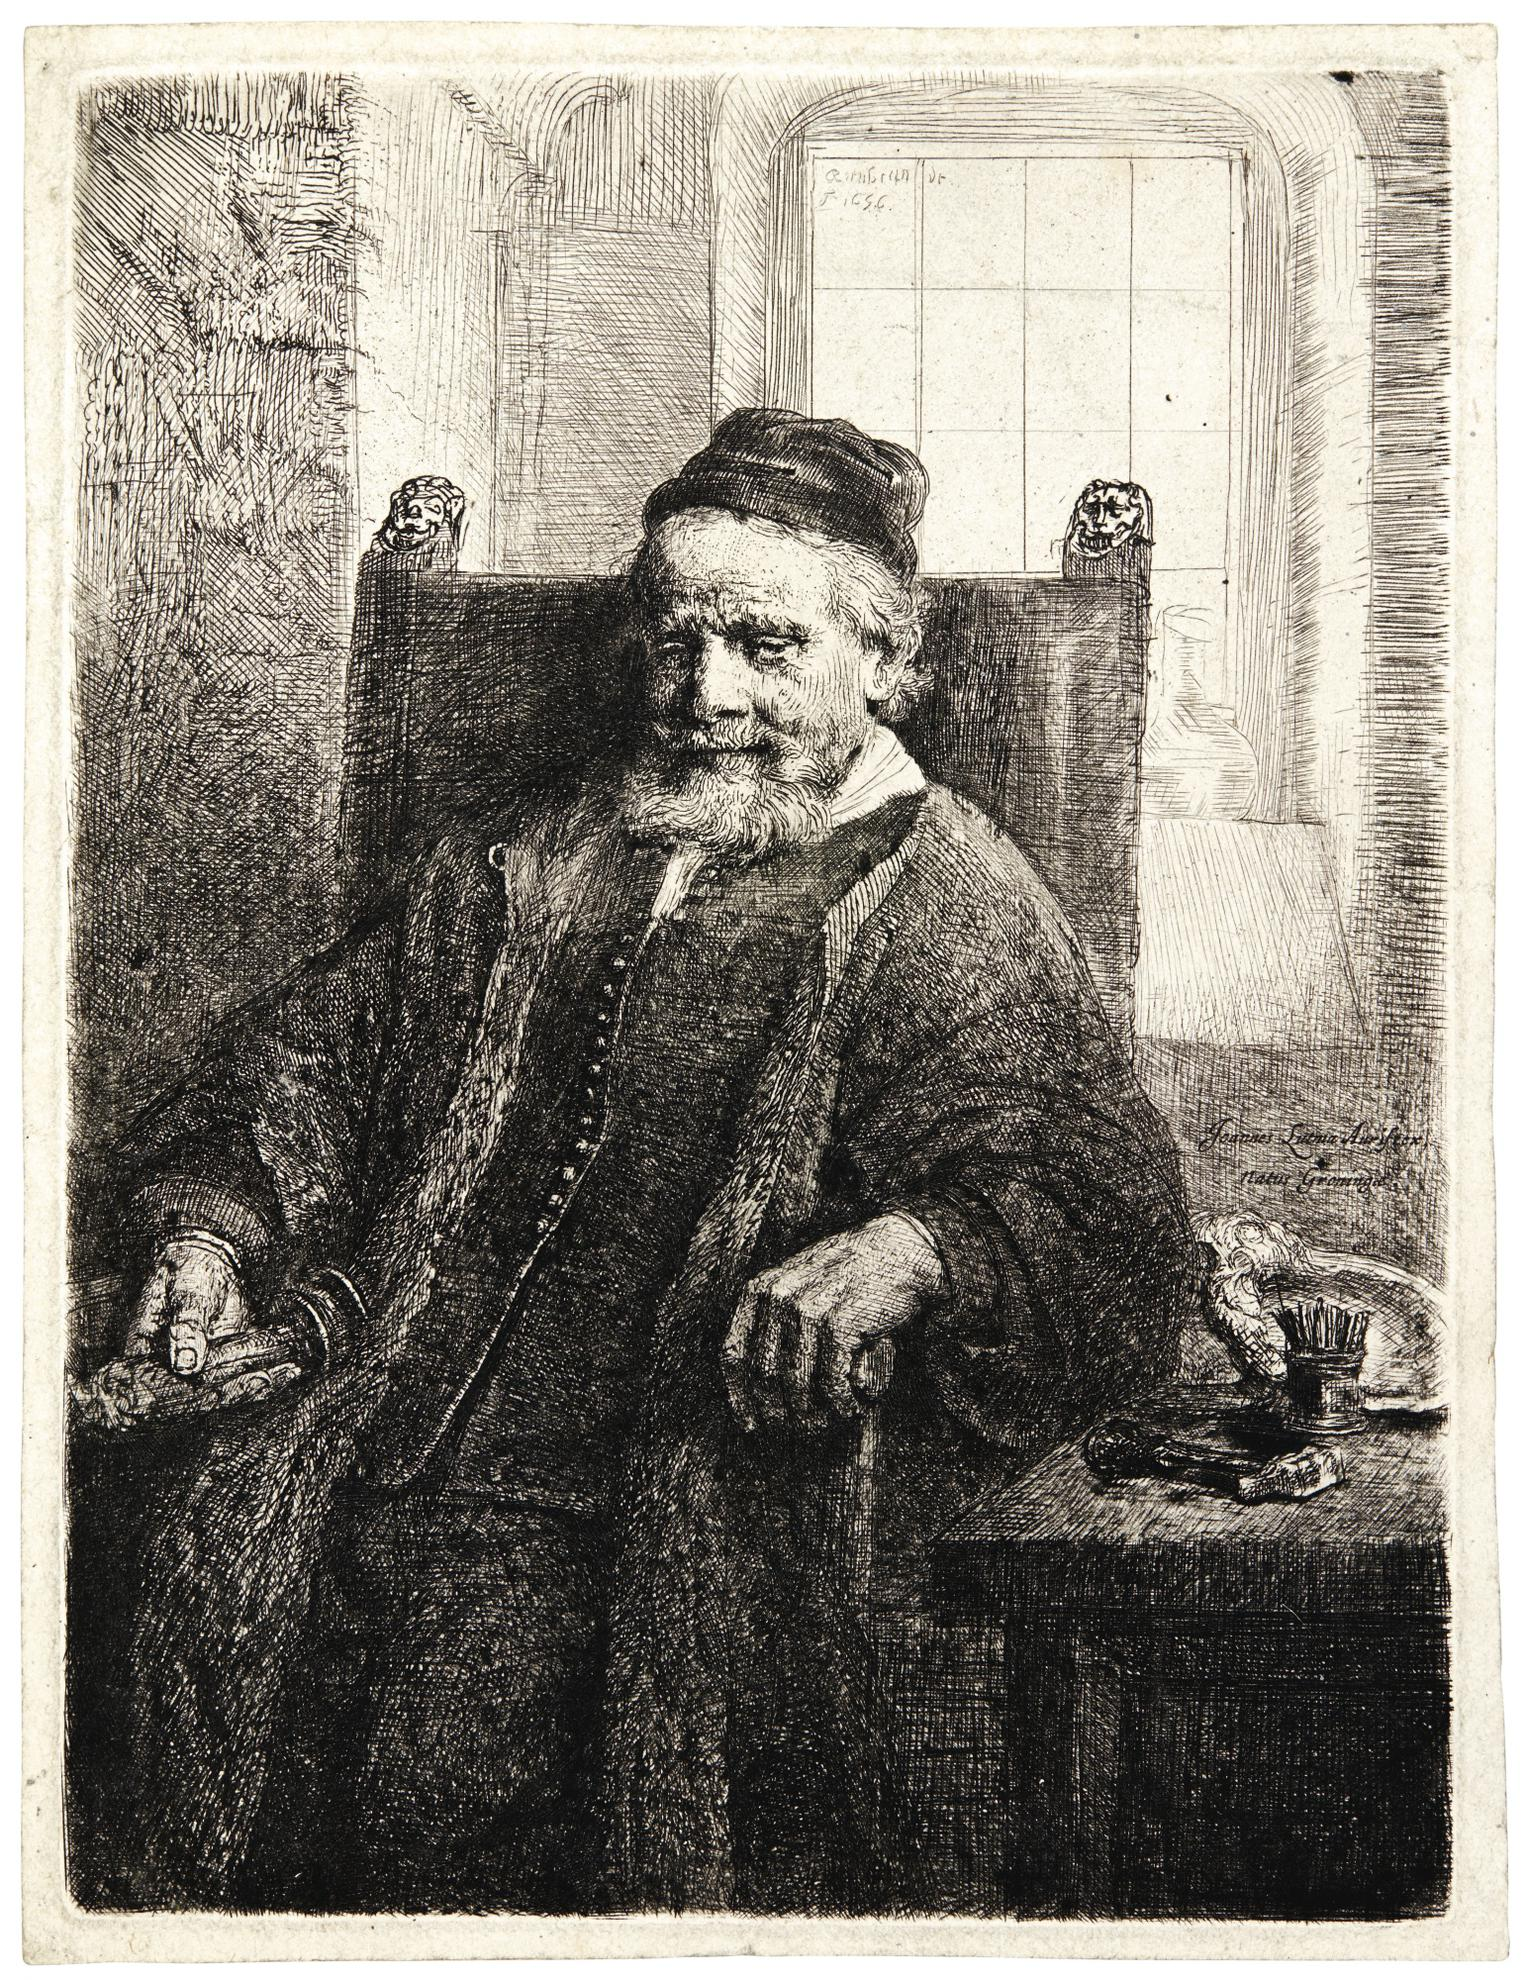 Rembrandt van Rijn-Jan Lutma, Goldsmith (B., Holl. 276; New Holl. 293; H. 290)-1656